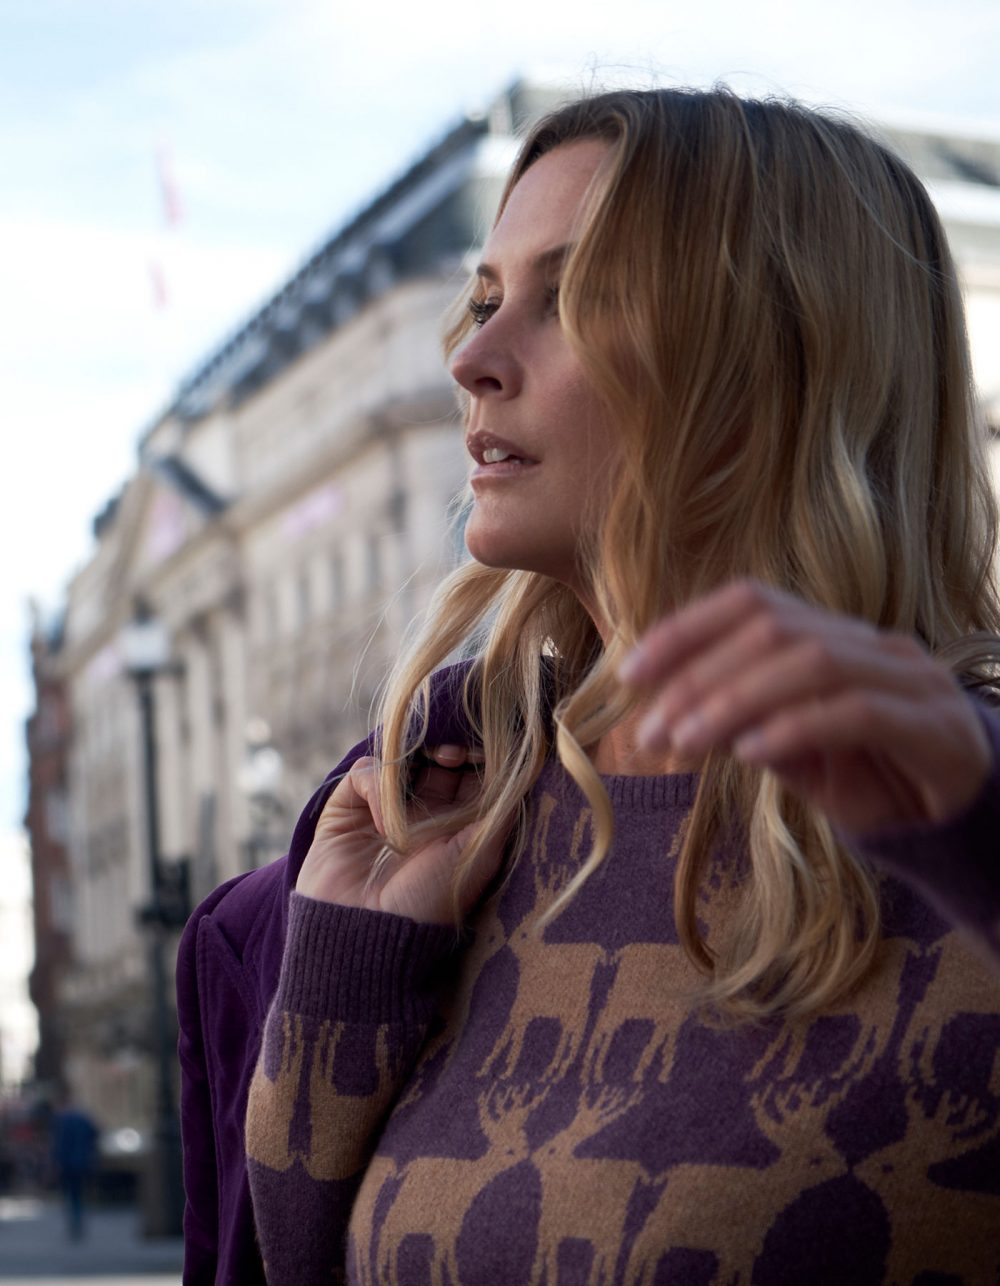 Close up of a woman in a city wearing cashmere knitwear, the malin darlin Reindeer purple cashmere jumper.